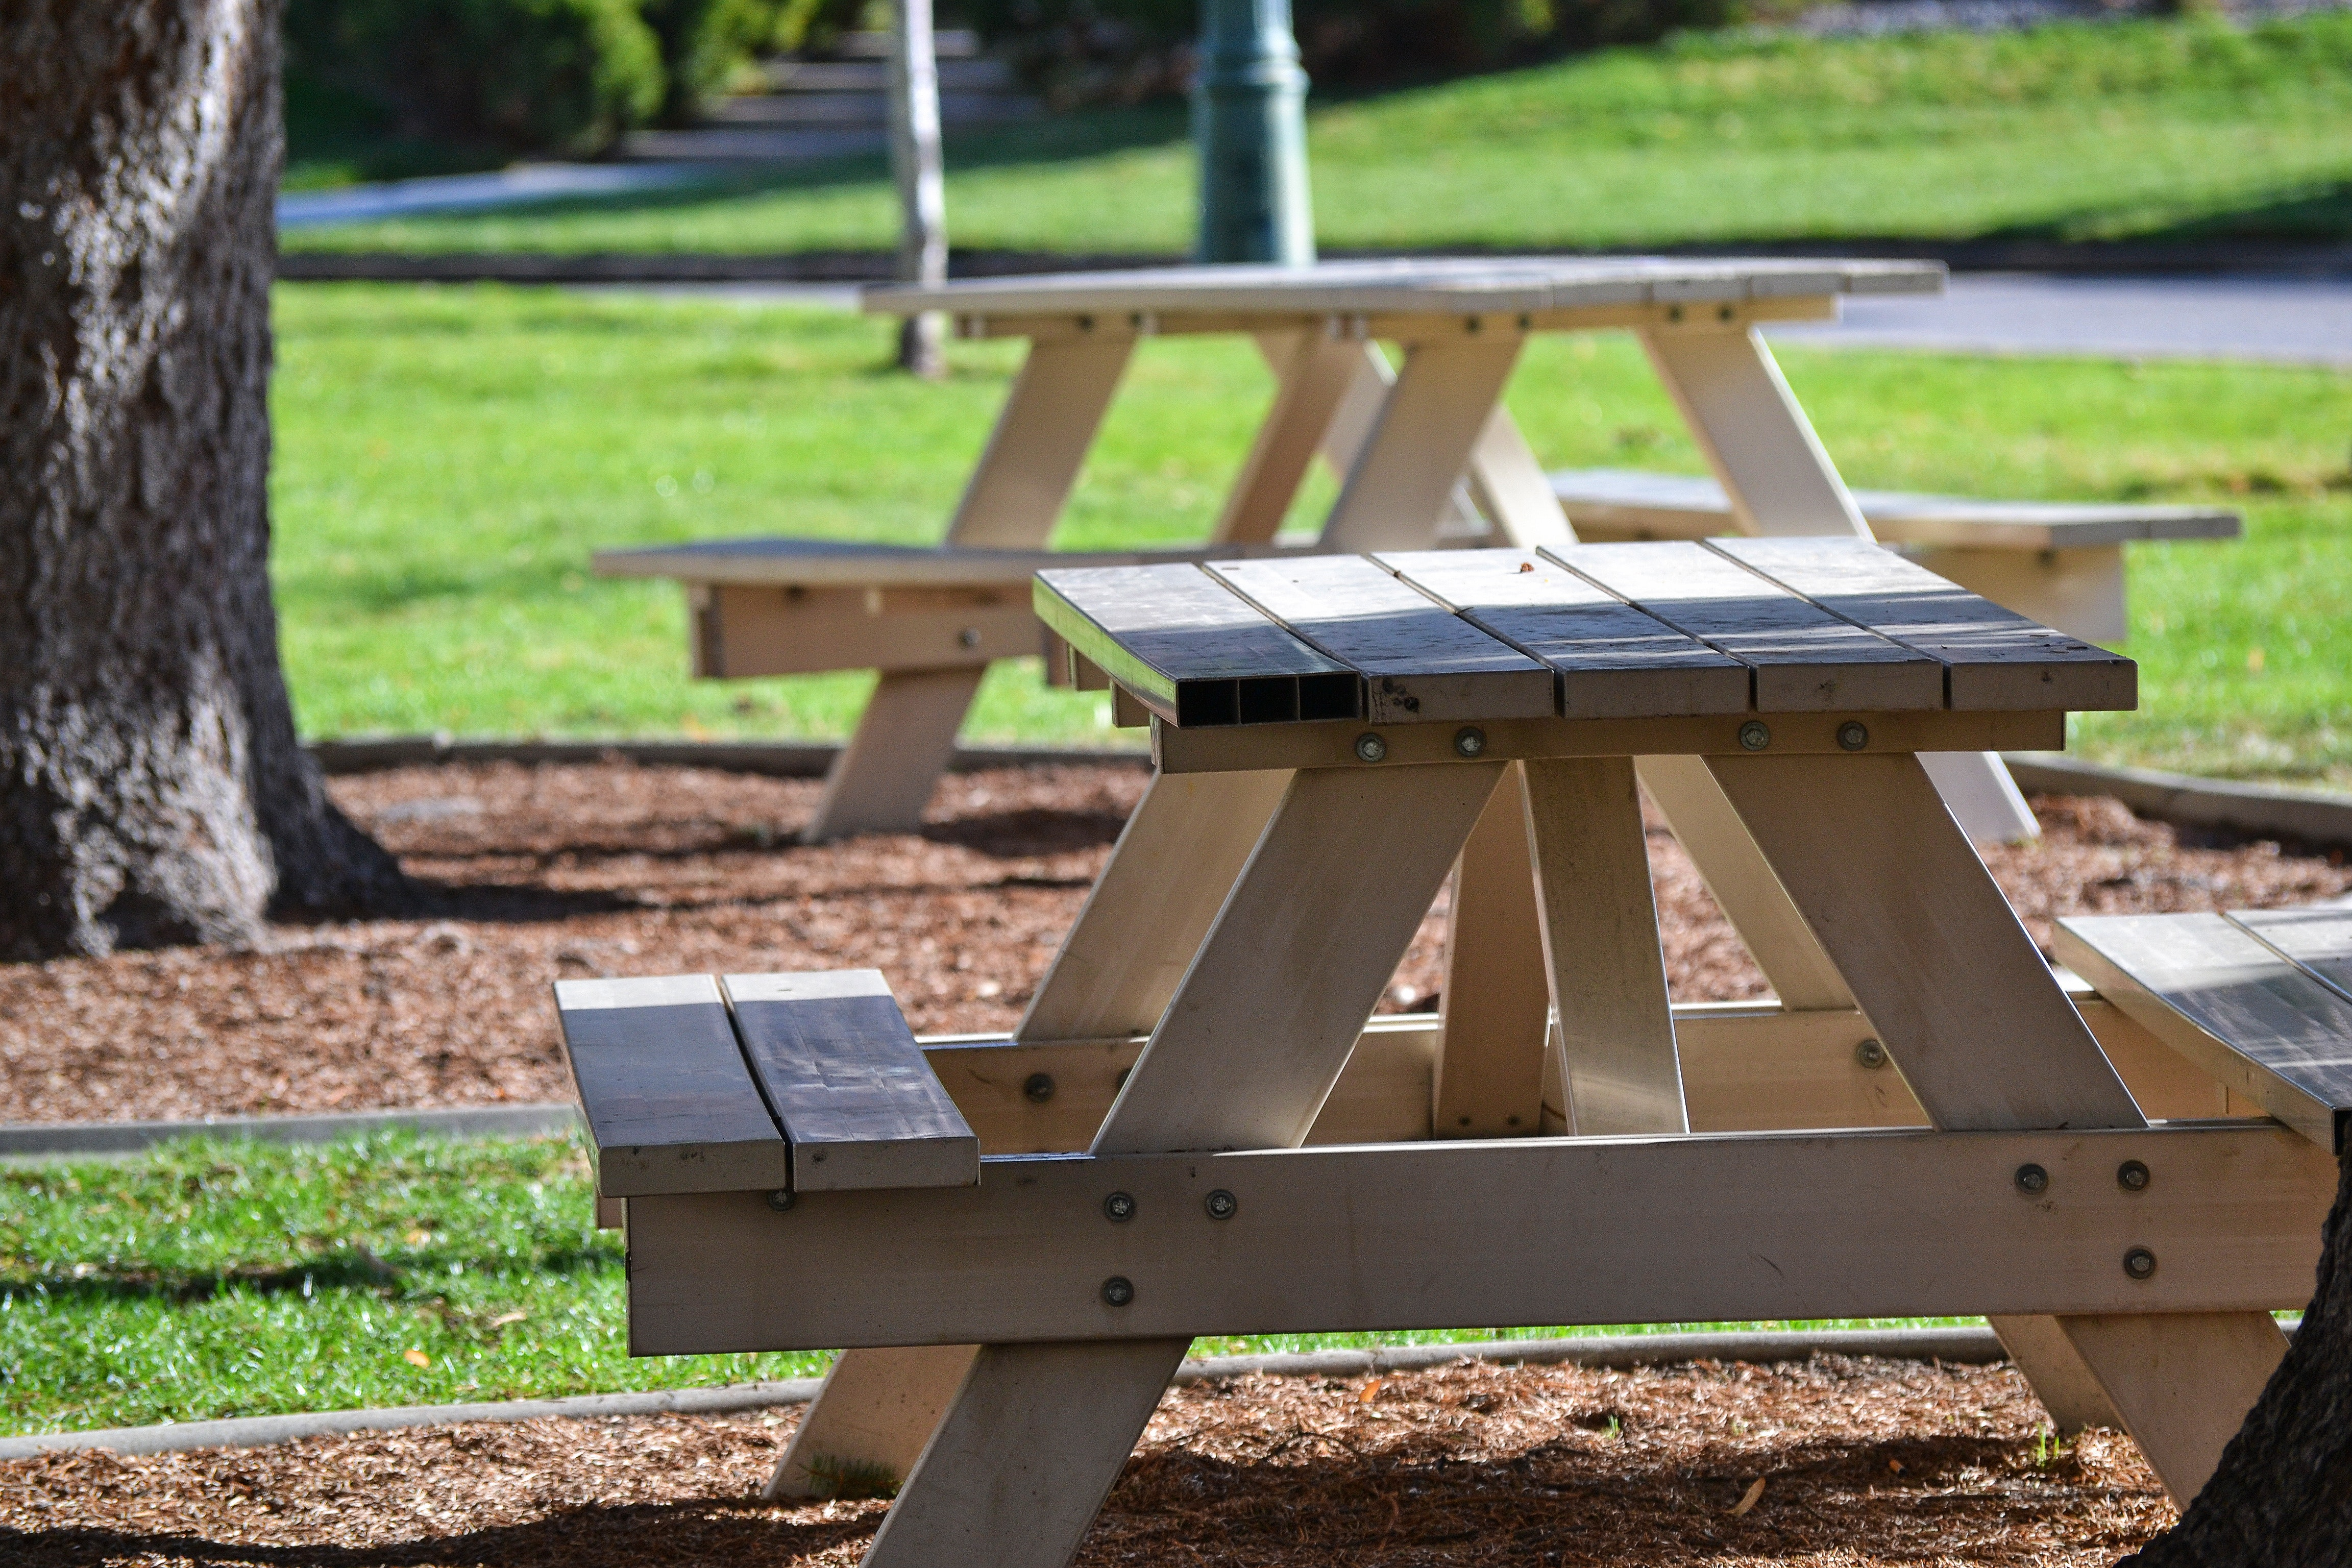 Picnic table on the grass in the city park, Picnic table on the grass in the city park